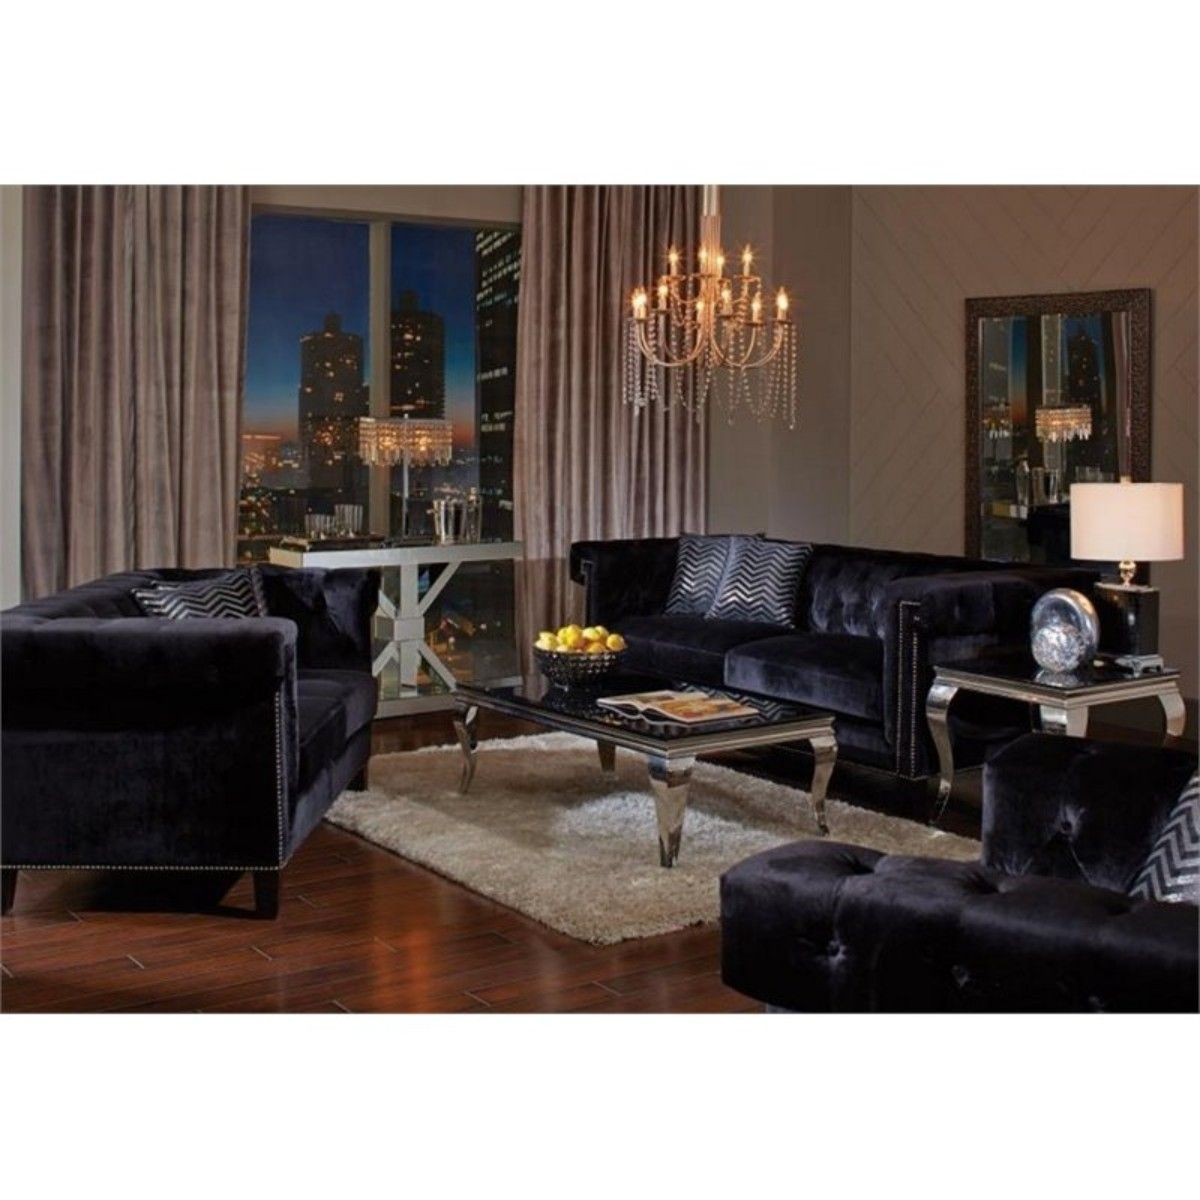 32+ 2 piece living room set black ideas in 2021